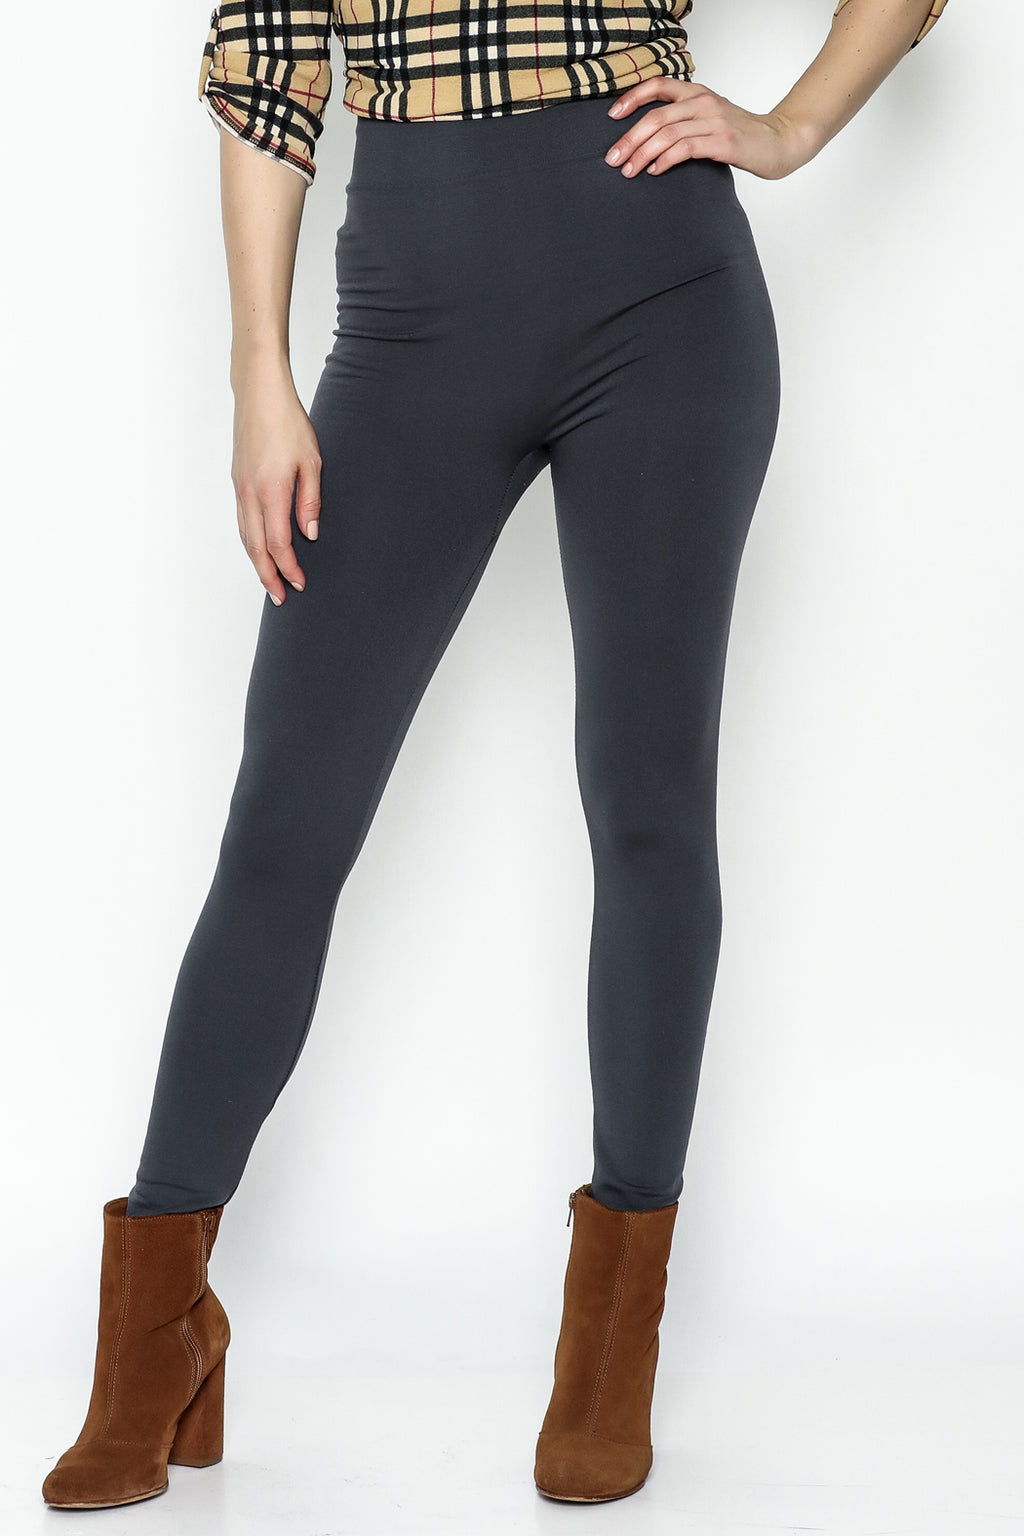 (Buy 2 Free Shipping)Fleece-Lined Leggings-Plus velvet thickening